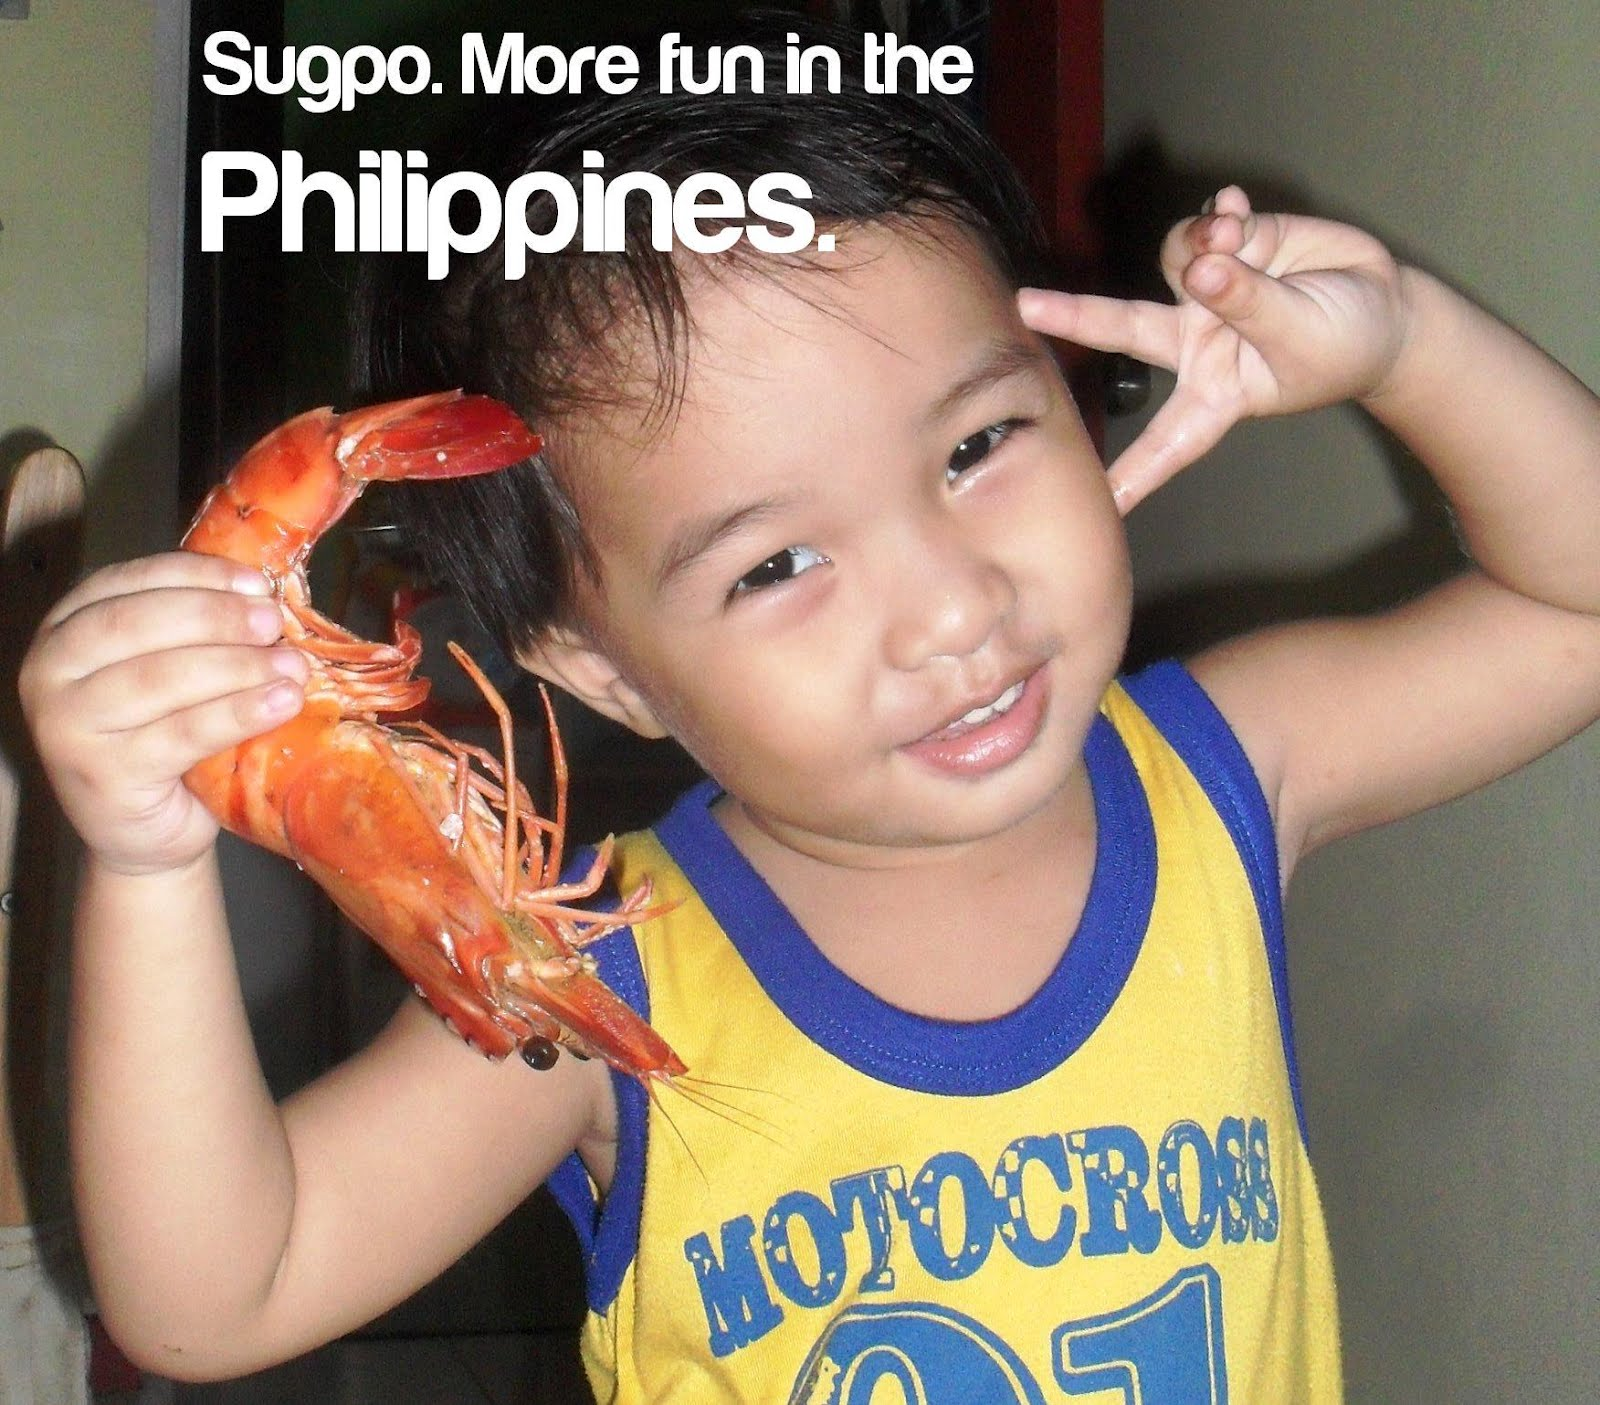 Sugpo More fun in the Philippines